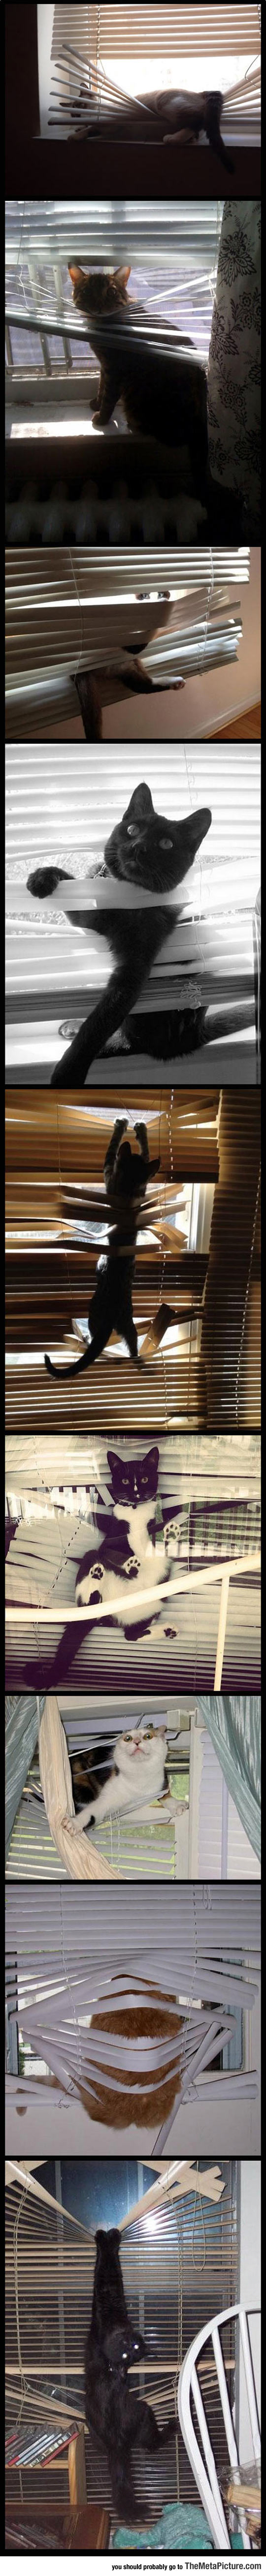 cool-cats-blinds-broke